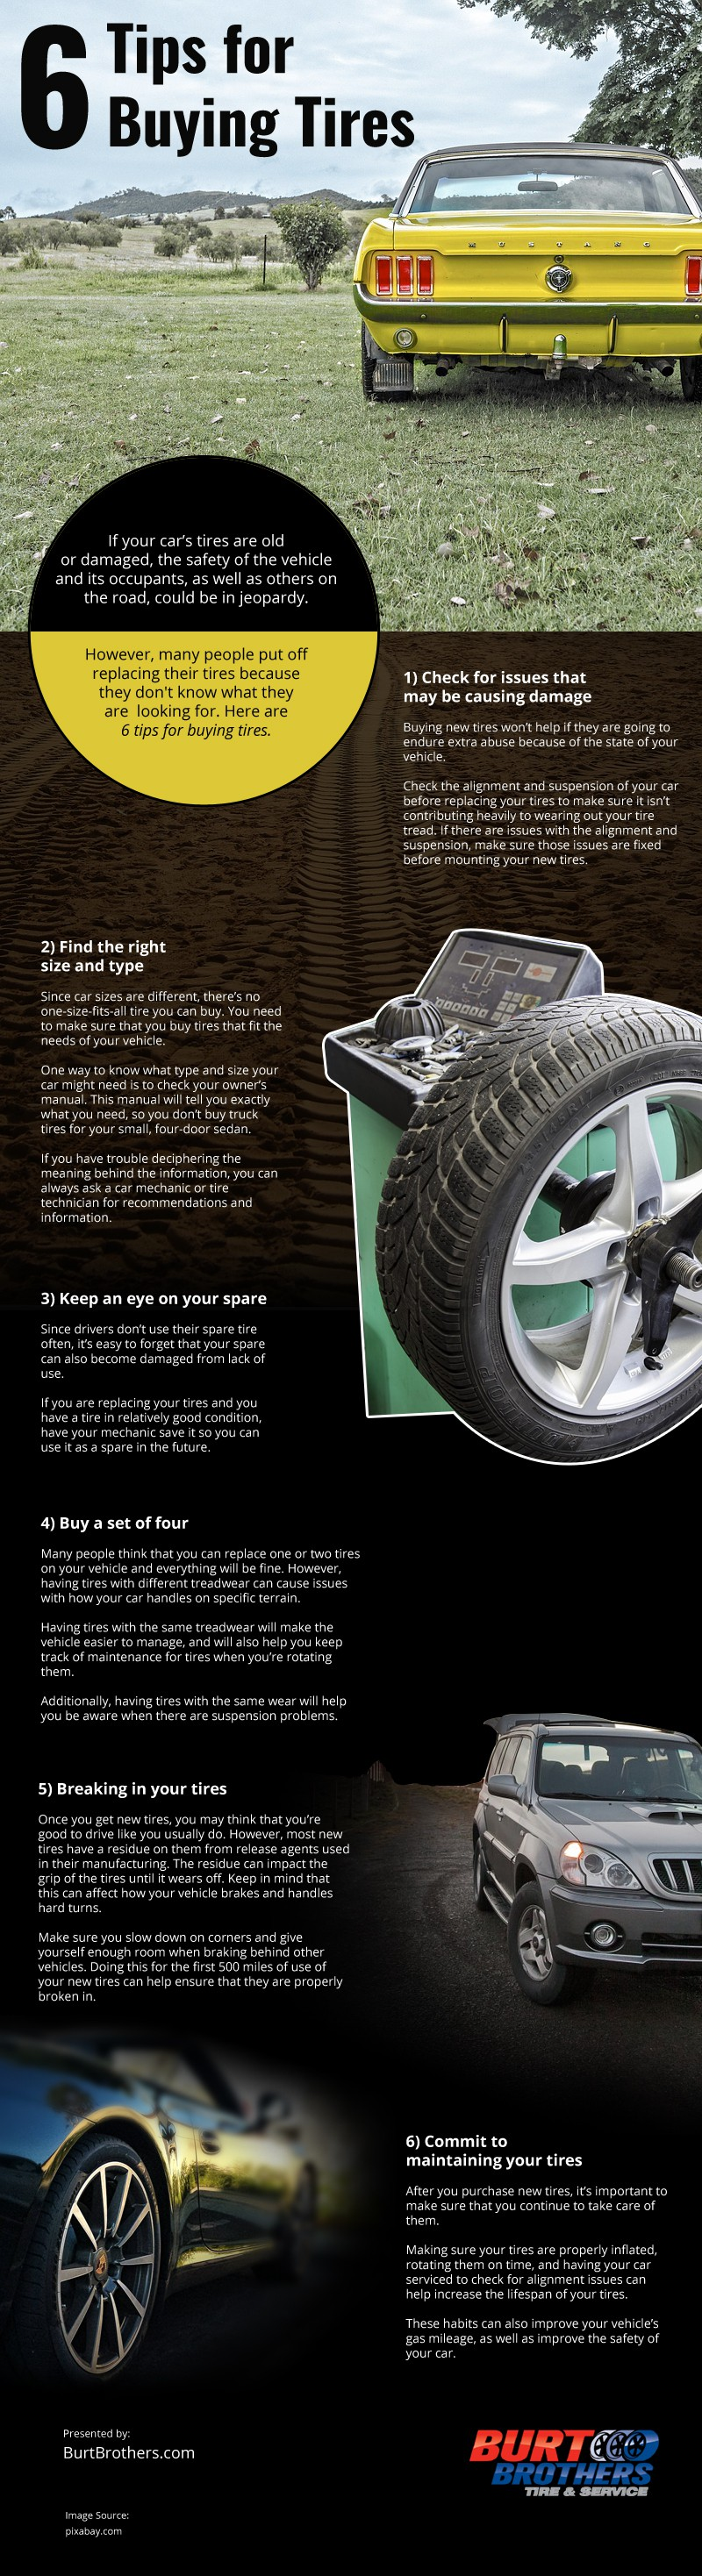 6 Tips for Buying Tires [infographic]